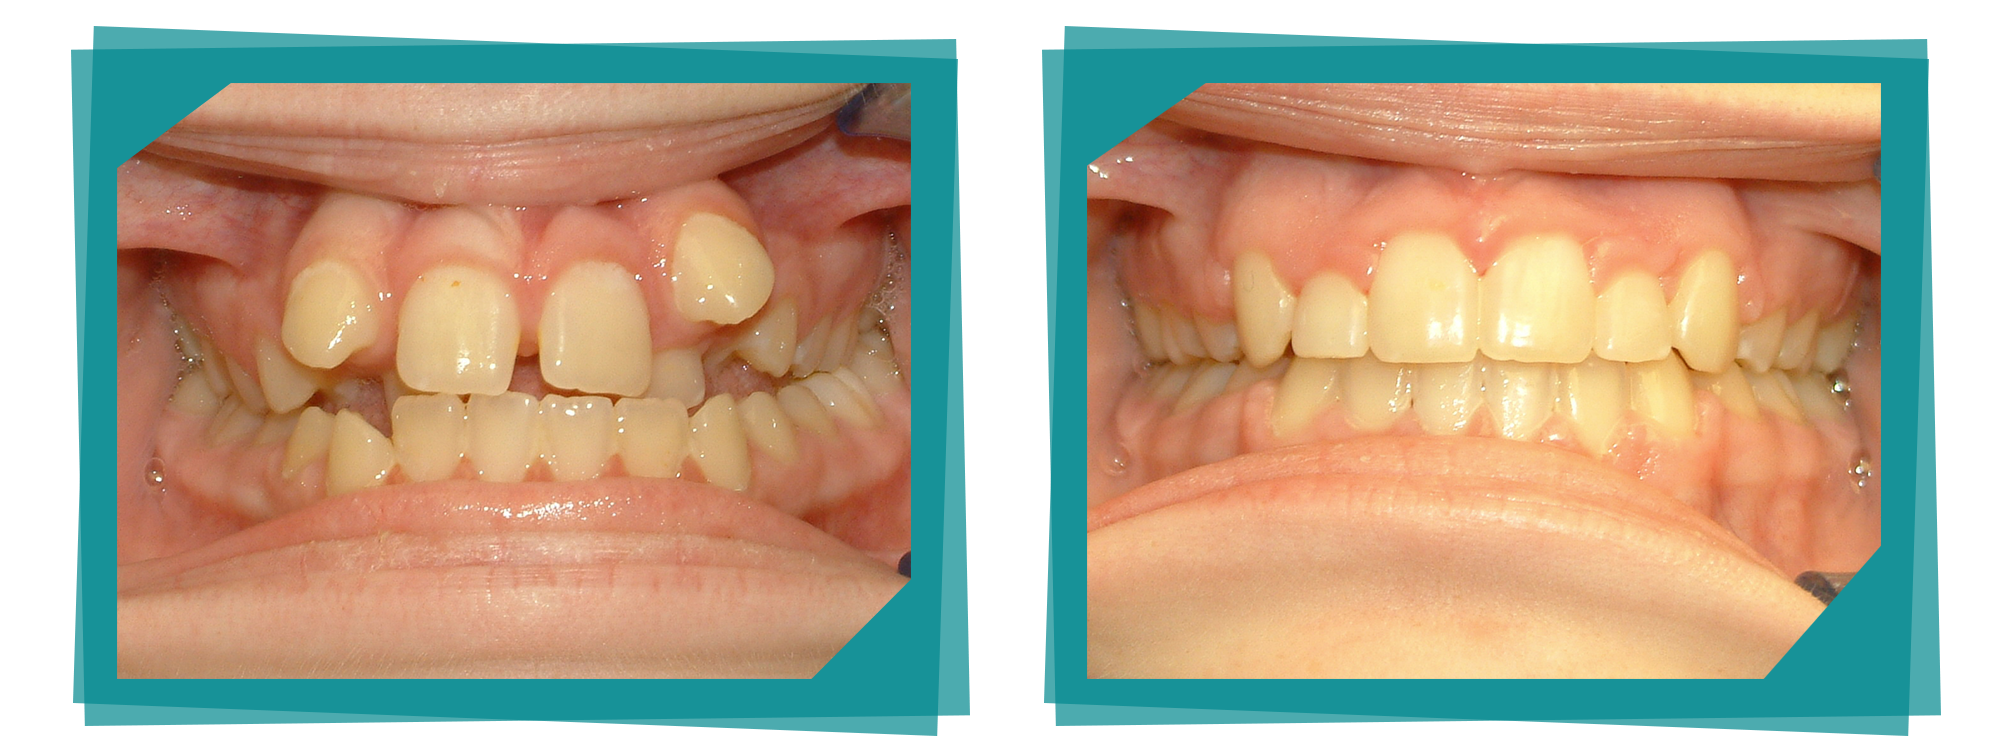 Teeth before and after cosmetic dentistry.